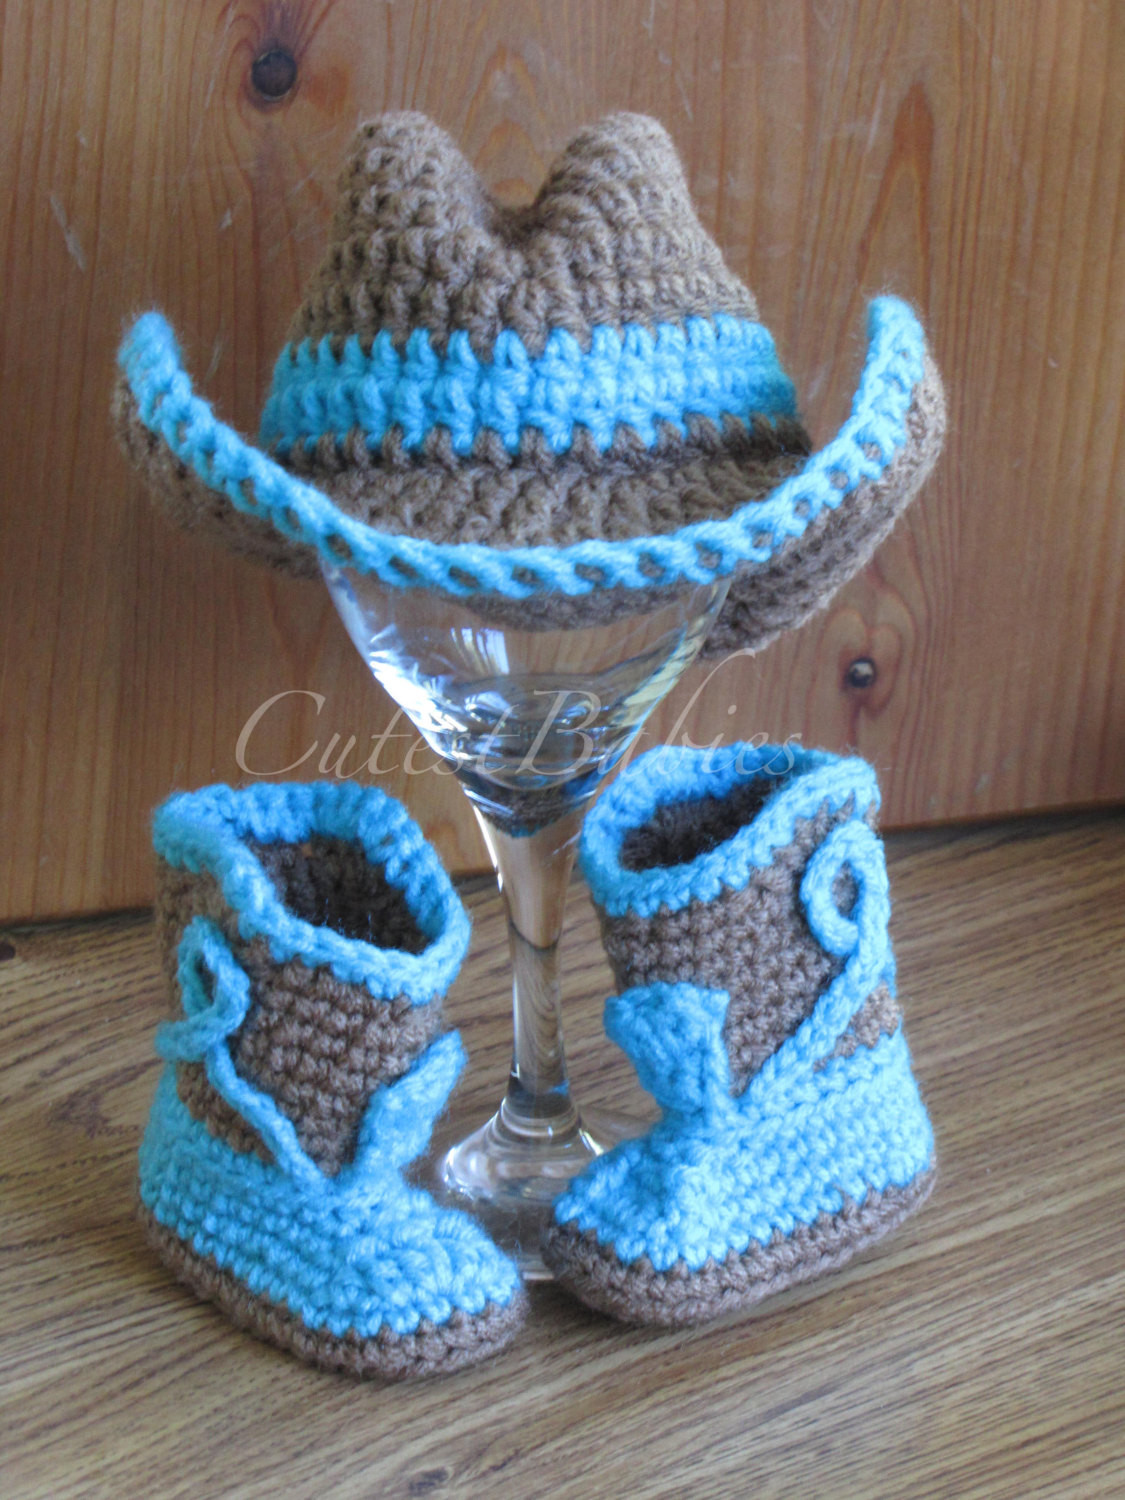 Crochet Baby Cowboy Hat and Boots Pattern Free Best Of Newborn Baby Crochet Cowboy Hat & Boots Prop 0 3 3 6m Of Brilliant 40 Ideas Crochet Baby Cowboy Hat and Boots Pattern Free